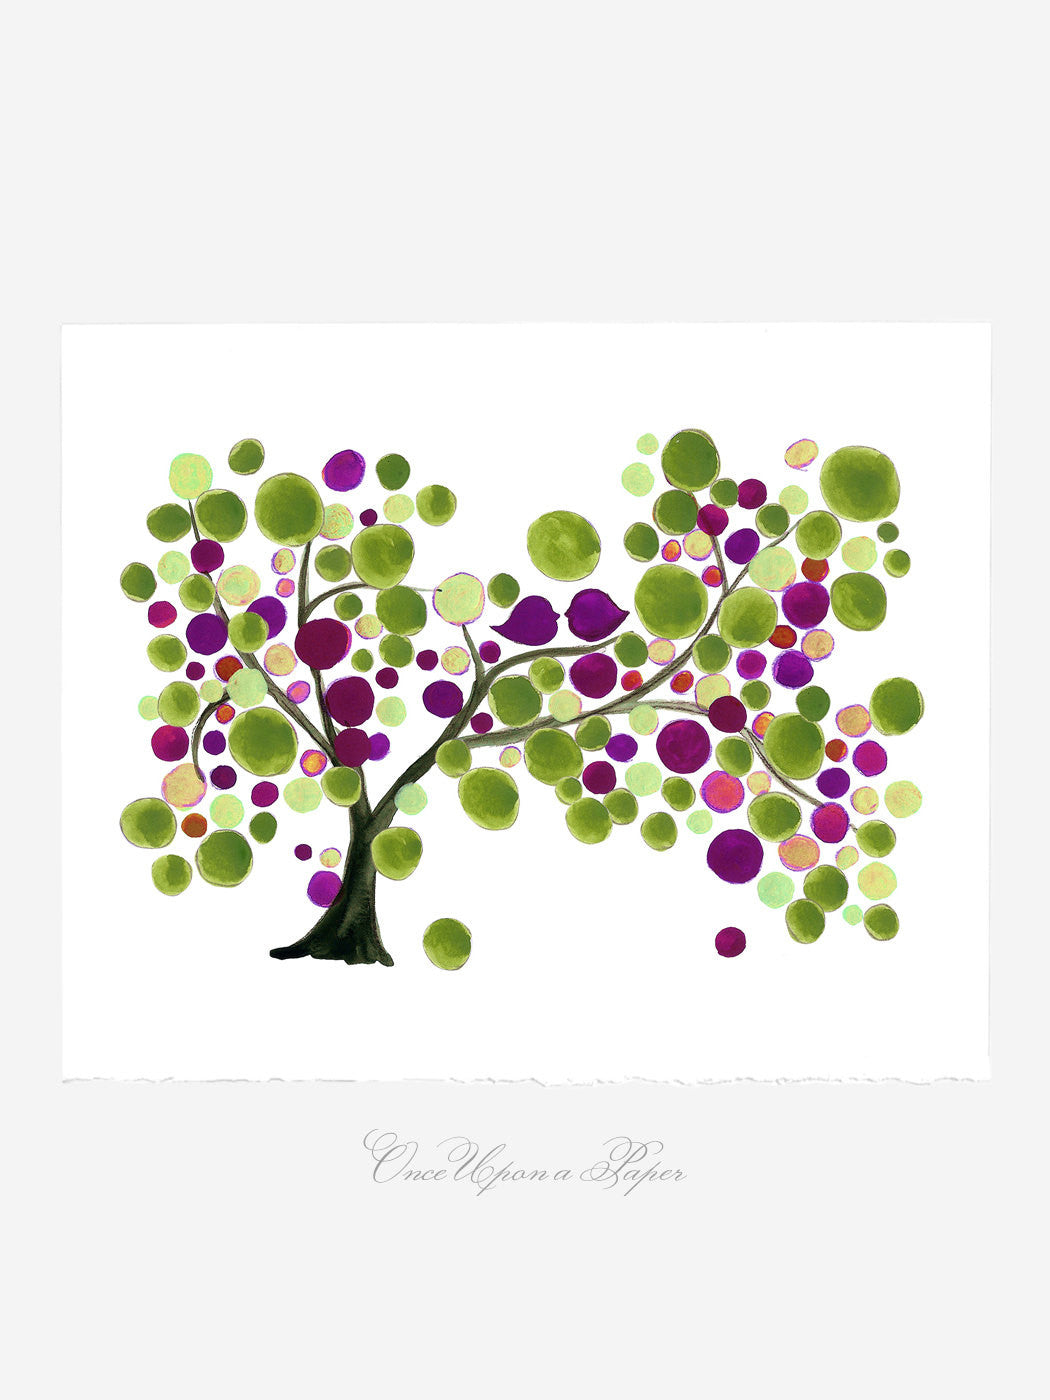 Mother Day Annyversary Gift - Mother Daughter Rich Tree  - Giclee Art Print Reproduction of Watercolor Painting -Trees of Life Collection